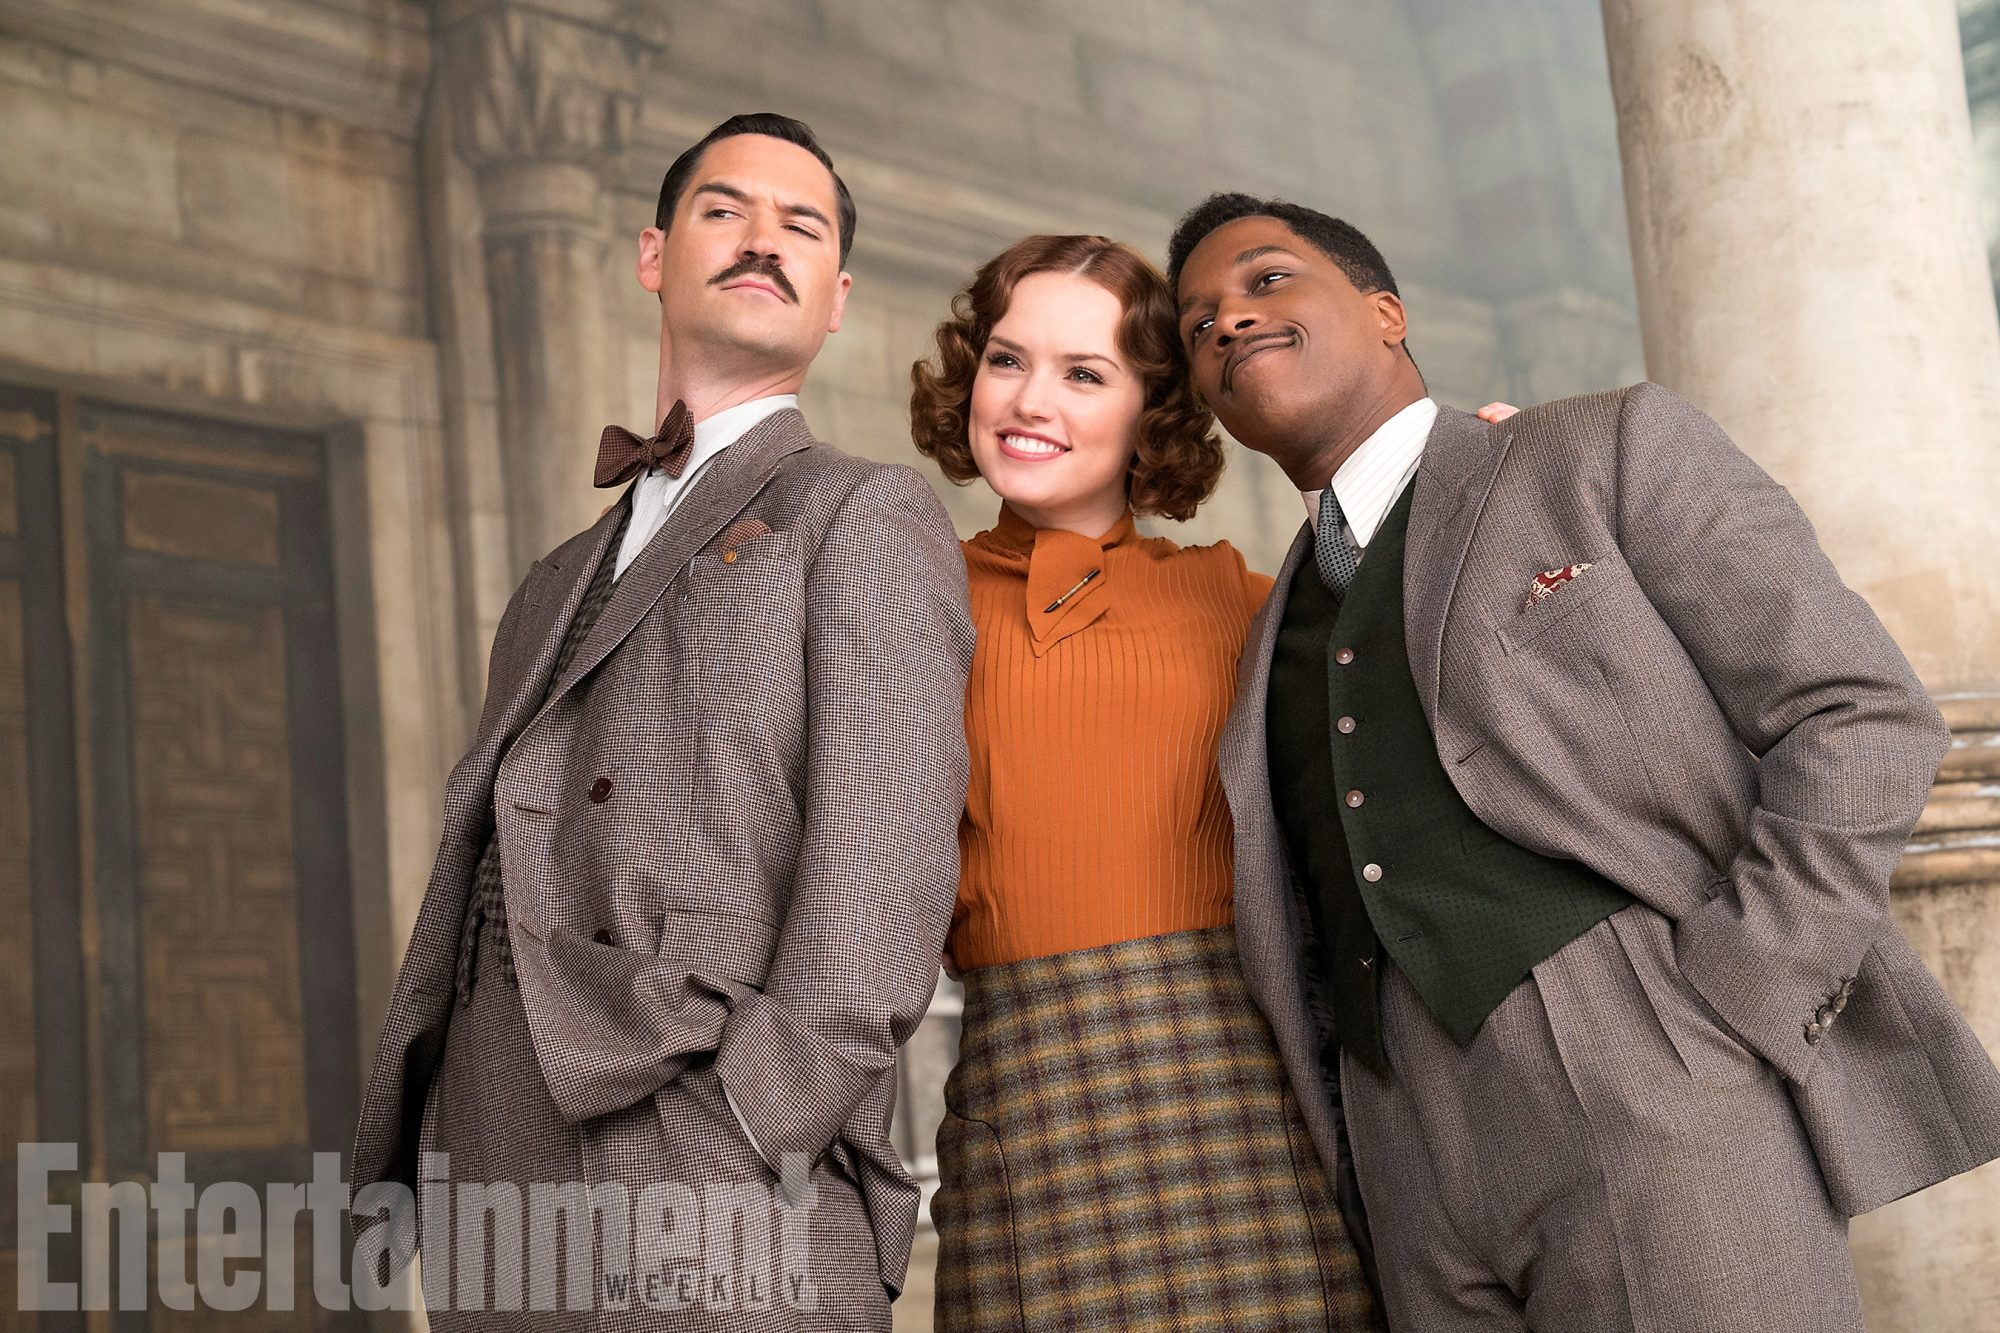 Manuel Garcia-Rulfo as Biniamino Marquez, Daisy Ridley as Mary Debenham, and Leslie Odom Jr. as Doctor Arbuthnot